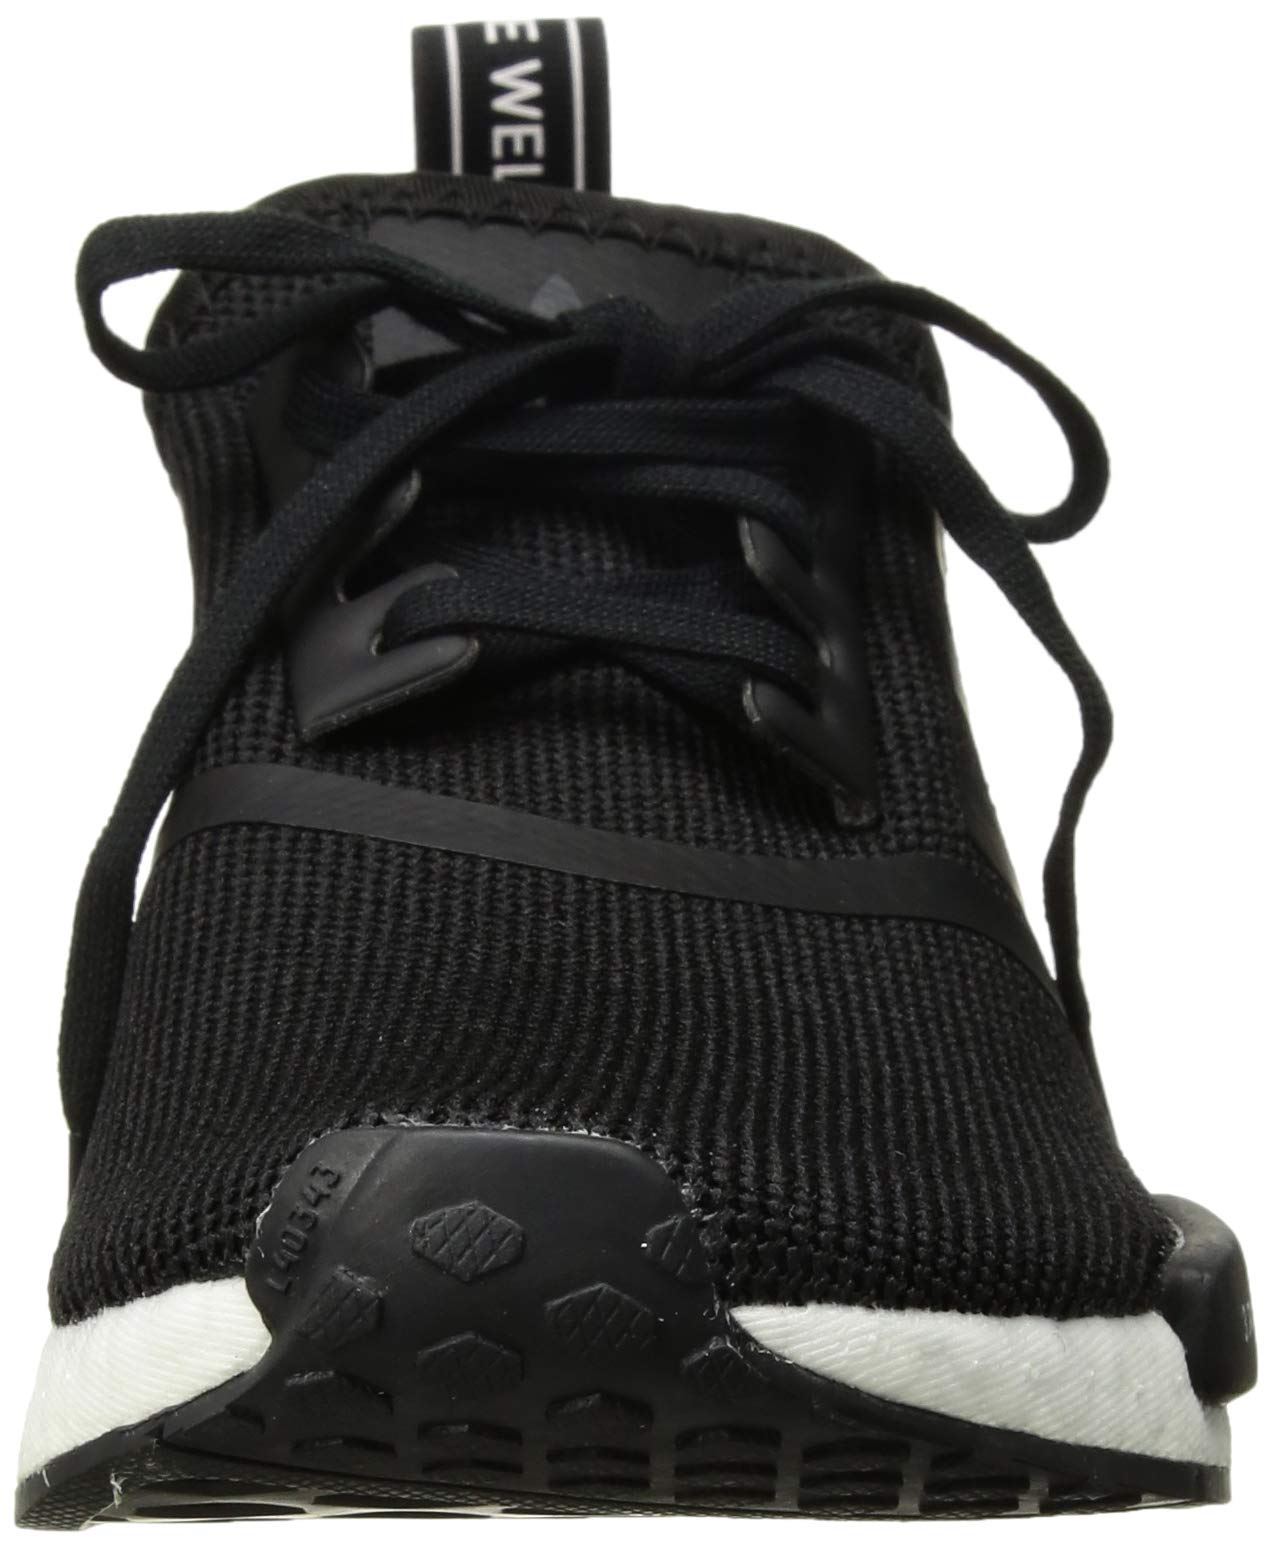 adidas Originals Unisex NMD_R1 Running Shoe, Black/Orchid Tint, 3.5 M US Big Kid by adidas Originals (Image #4)